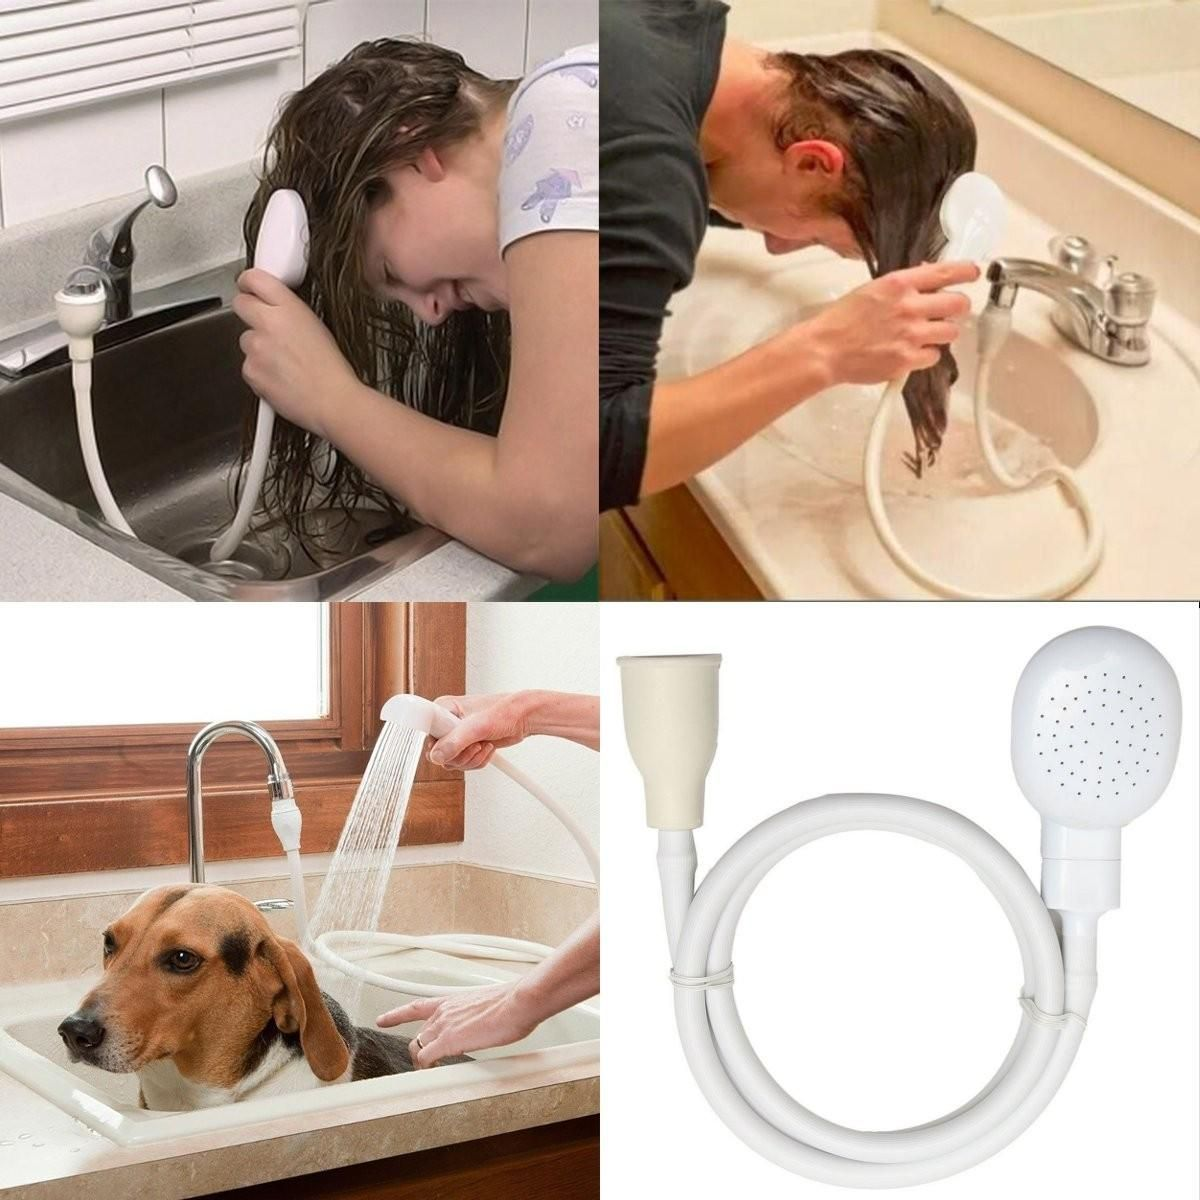 Hair Pet Dog Shower Spray Hose Bath Tub Sink Faucet Washing